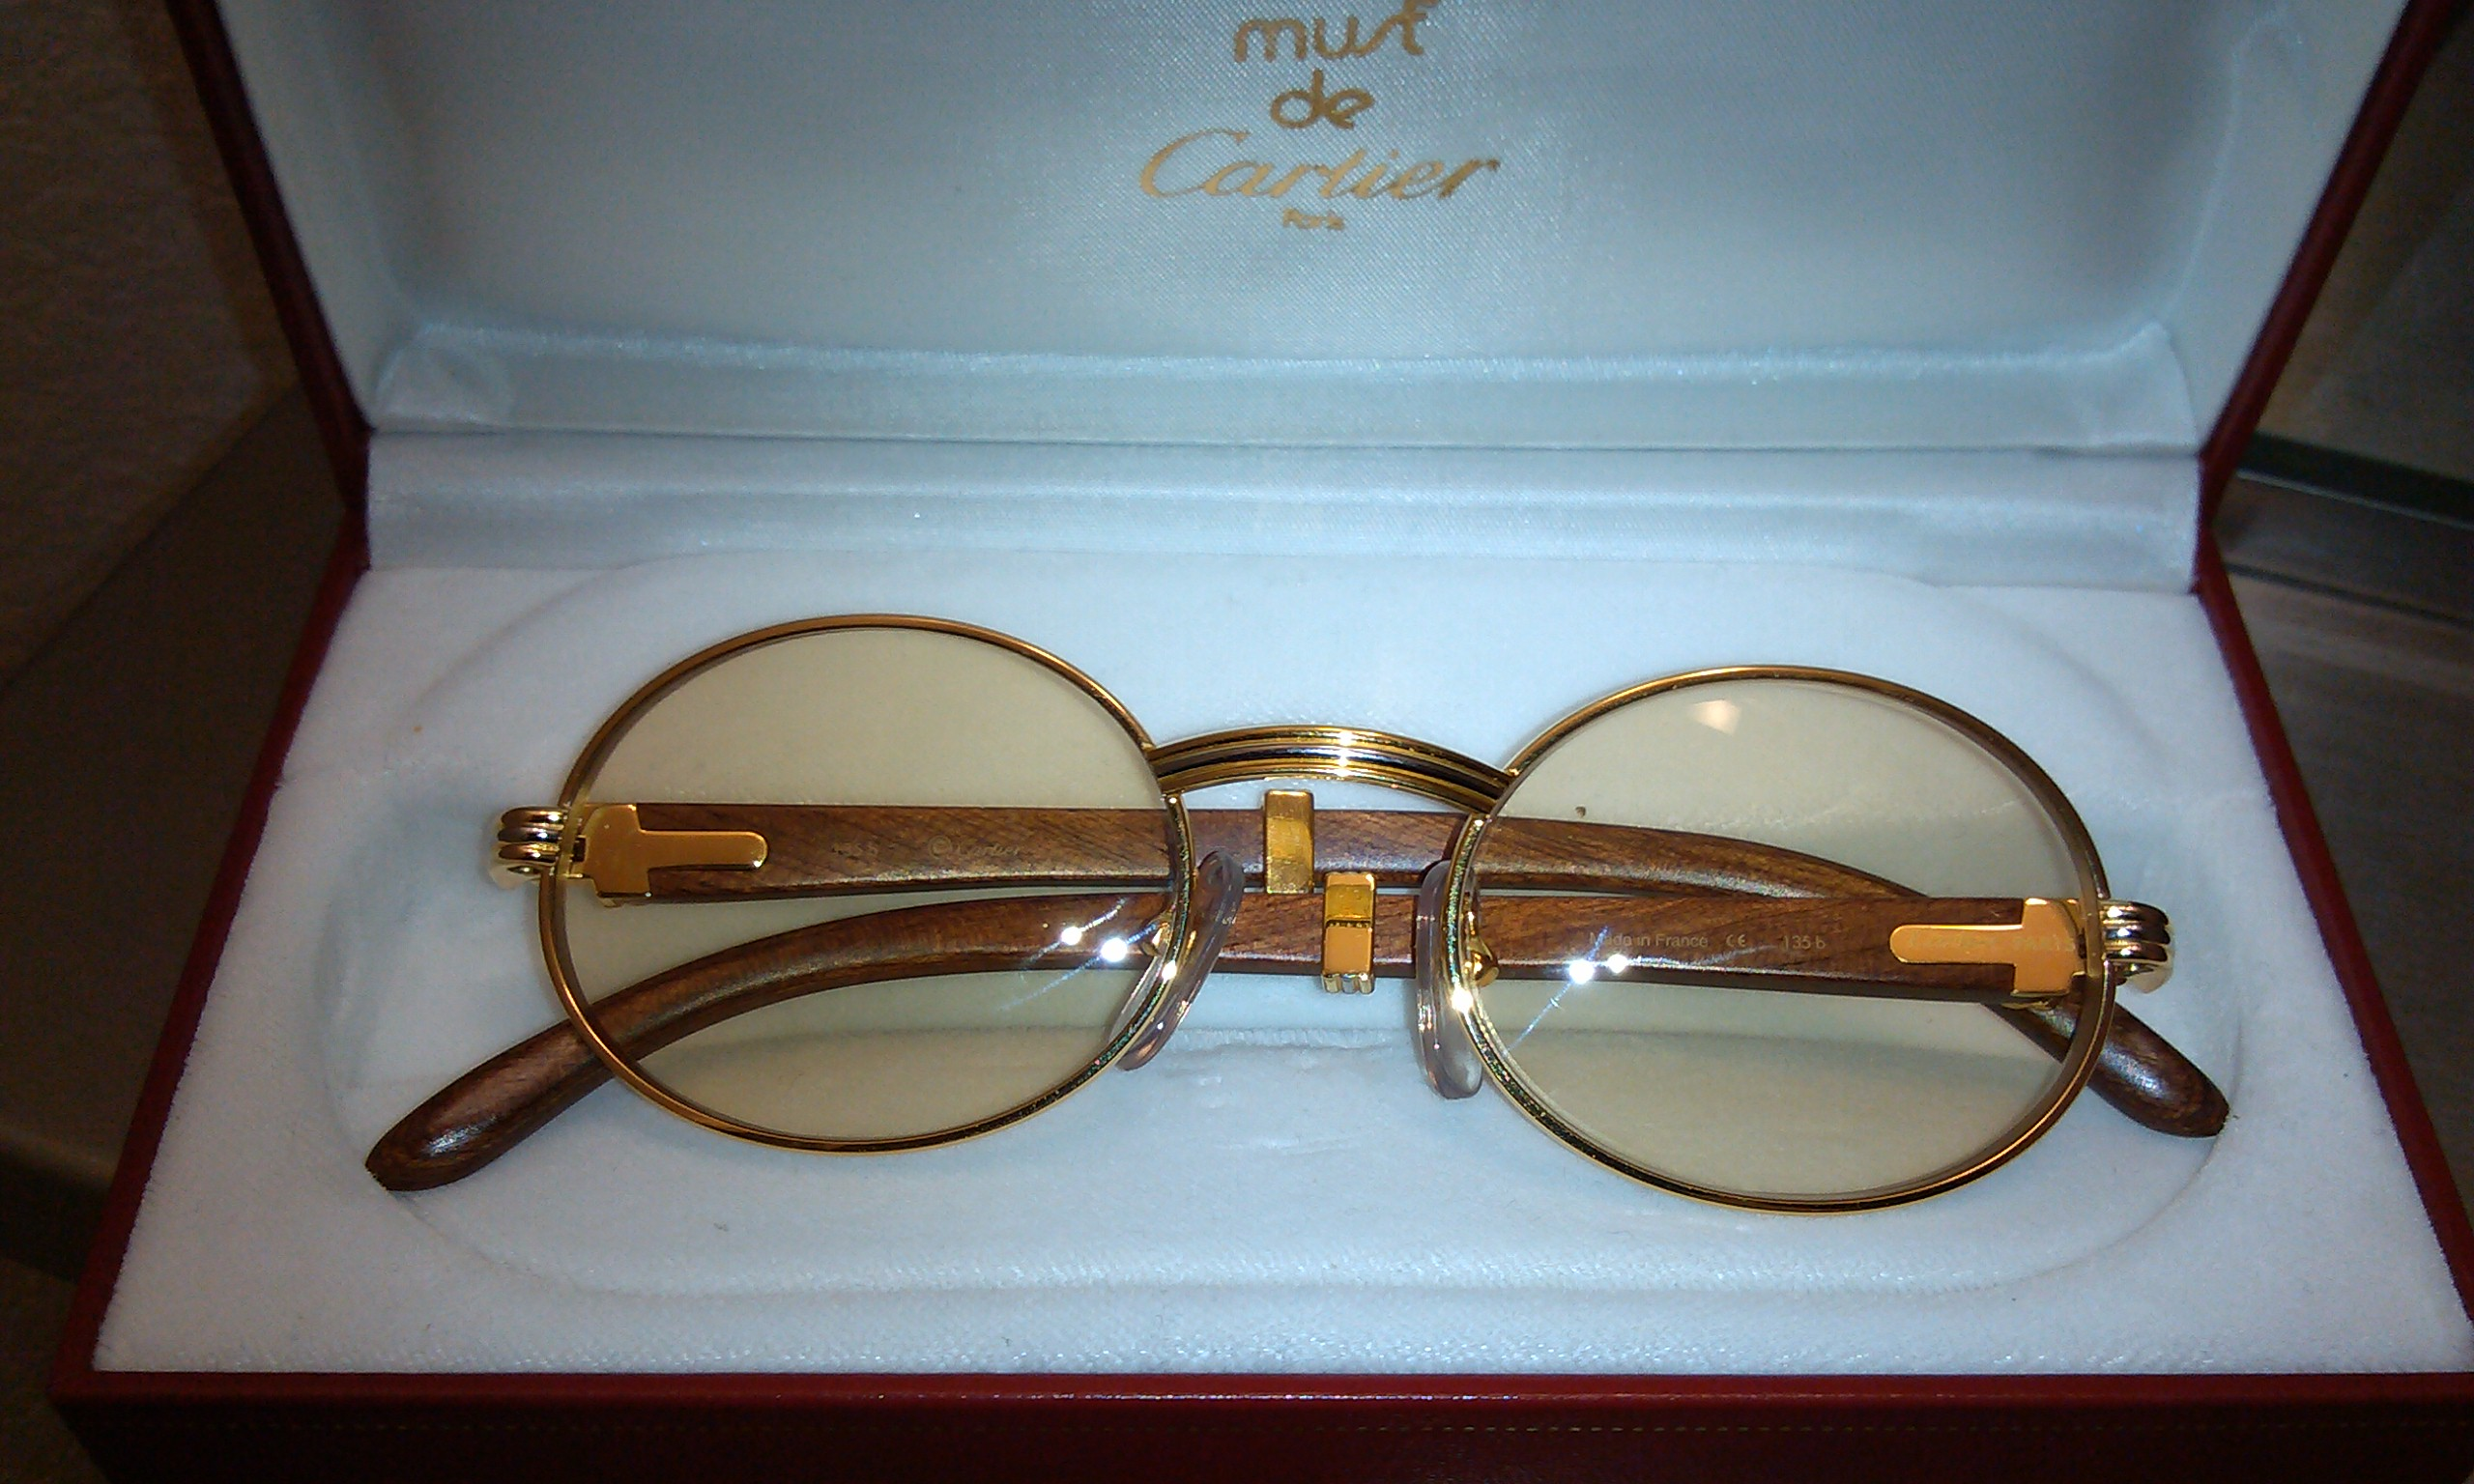 Rare cartier giverny glasses antique appraisal | InstAppraisal